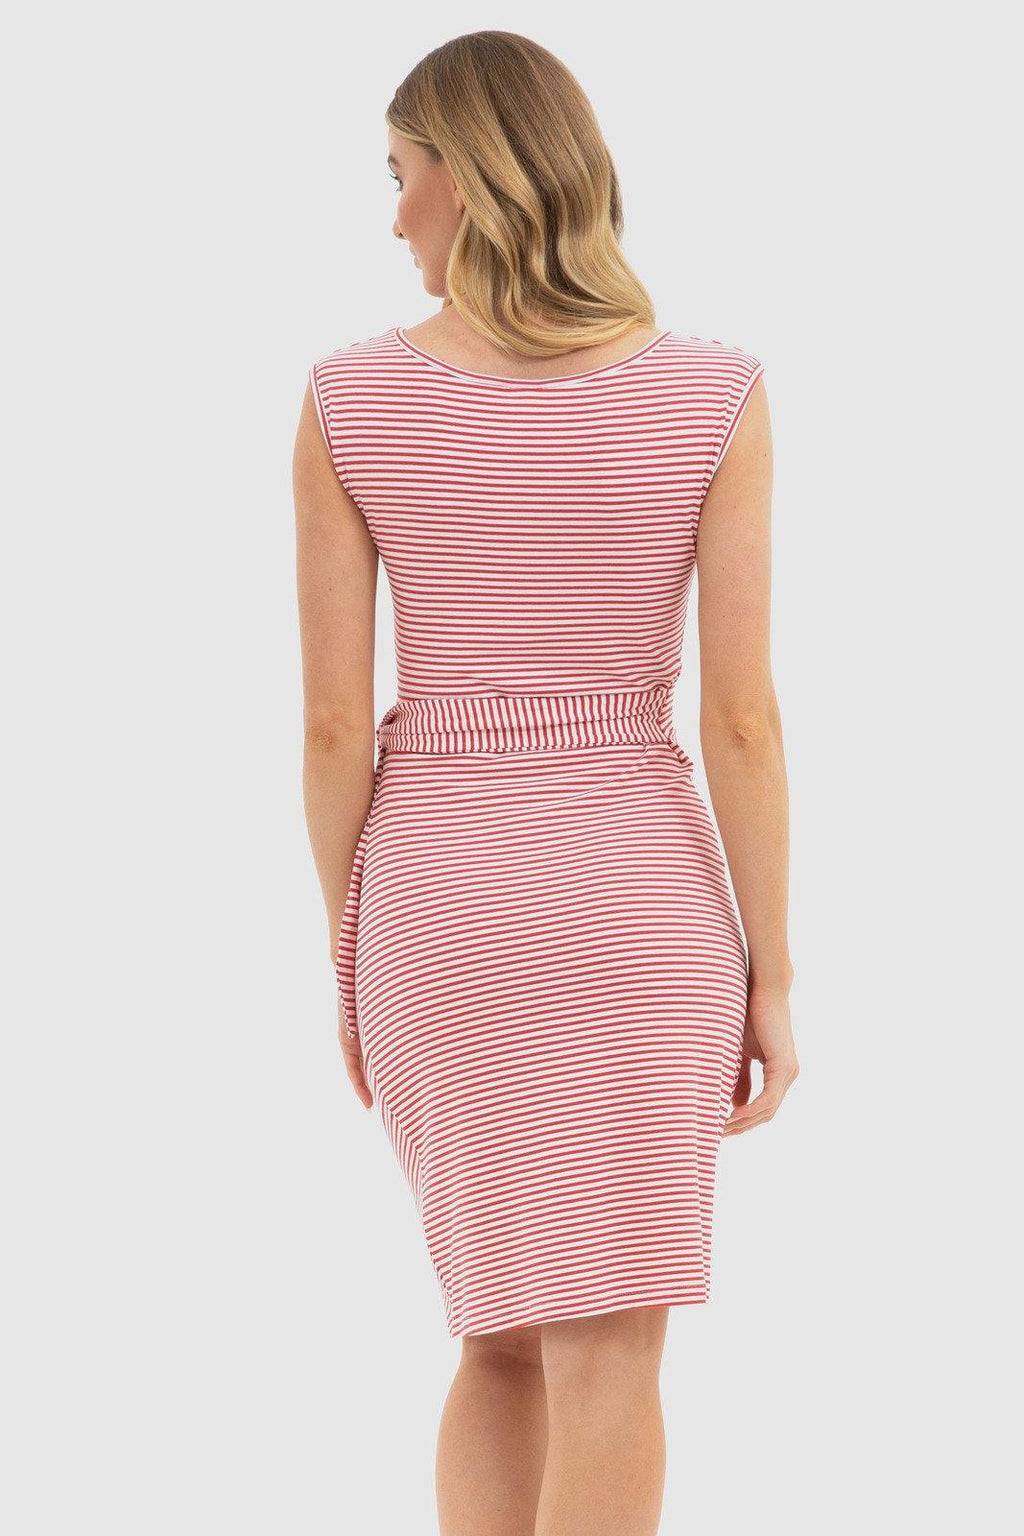 Bamboo Body Shell Dress - Red + White Stripe